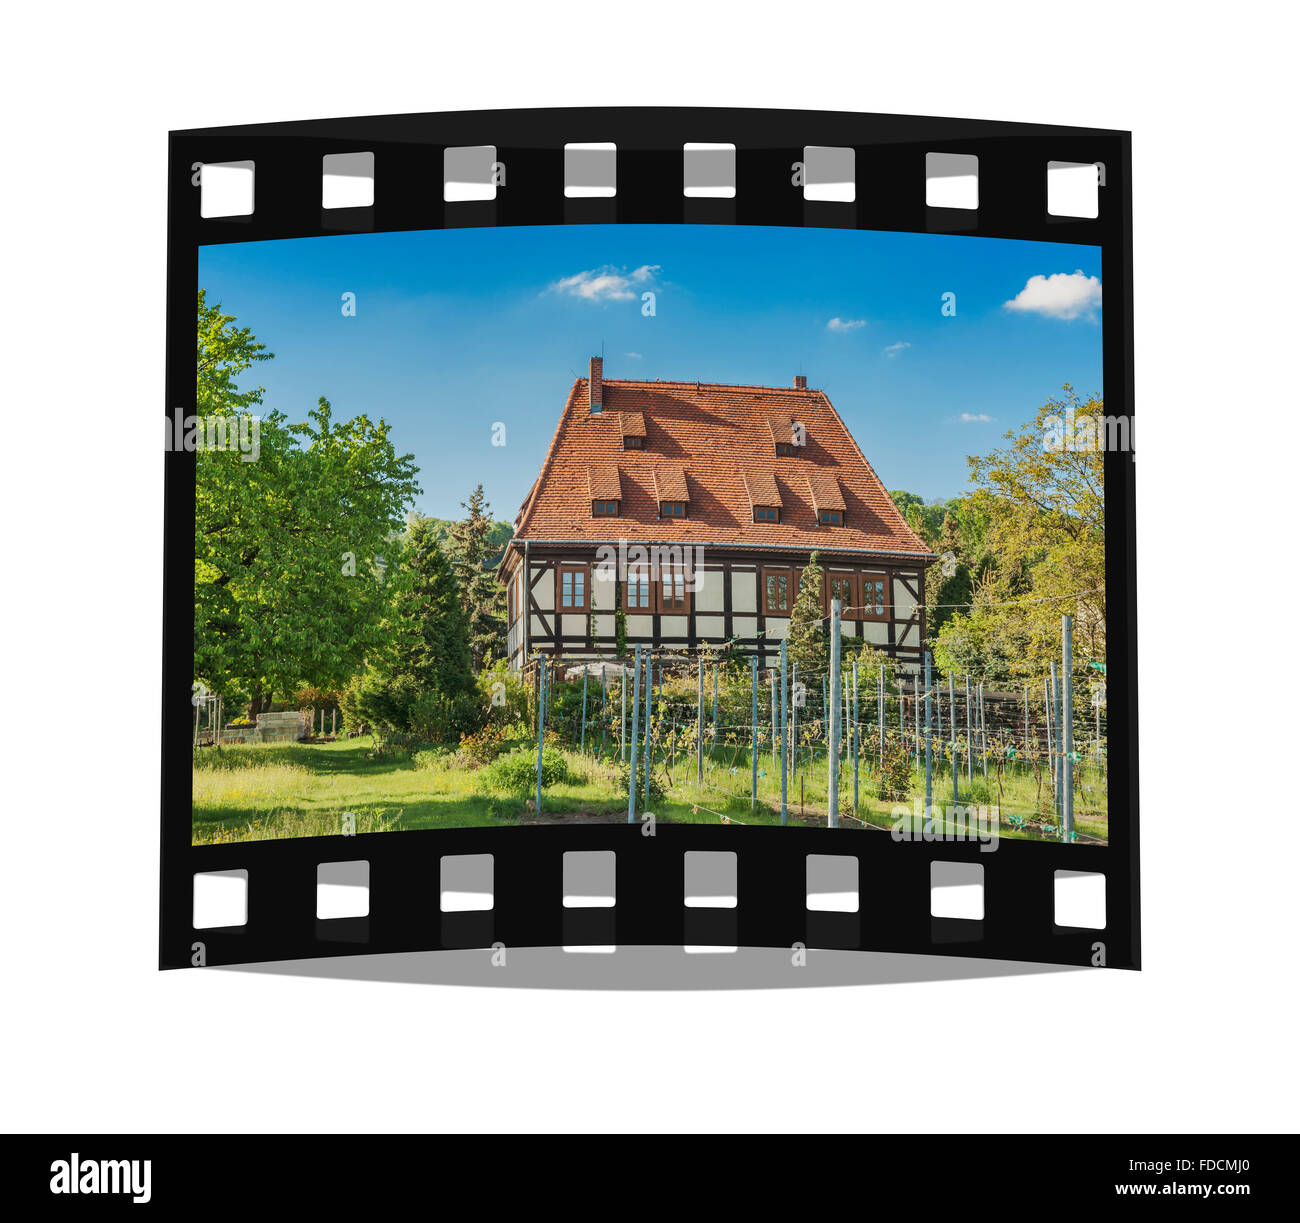 Breitig House is a listed winegrower's House, Radebeul near Dresden, administrative district Meissen, Saxony, - Stock Image